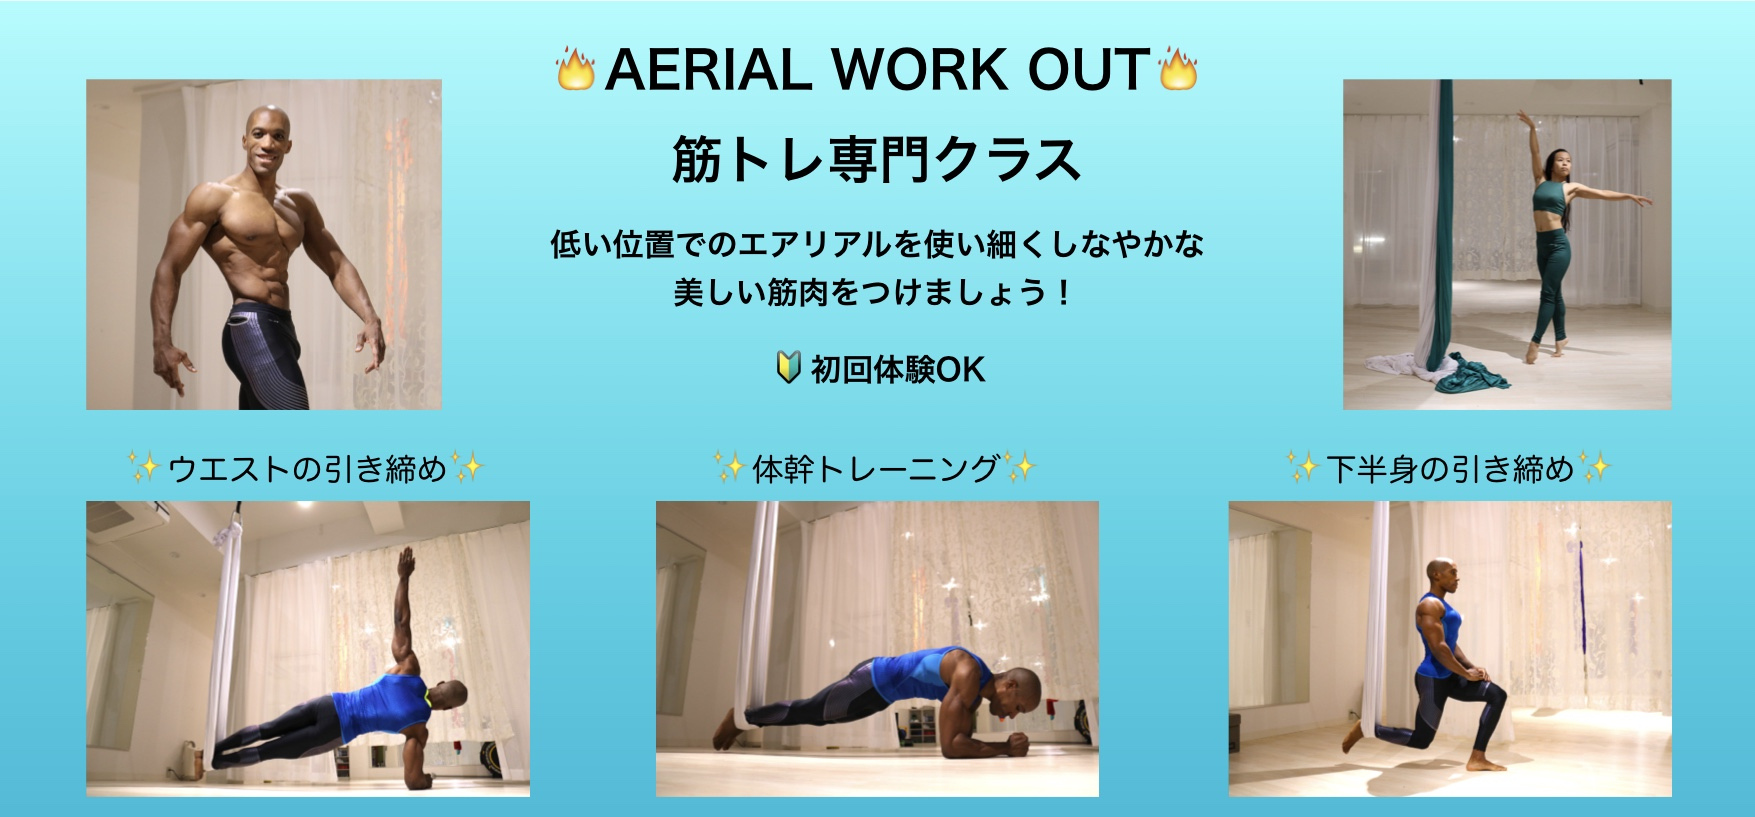 aerial-work-out